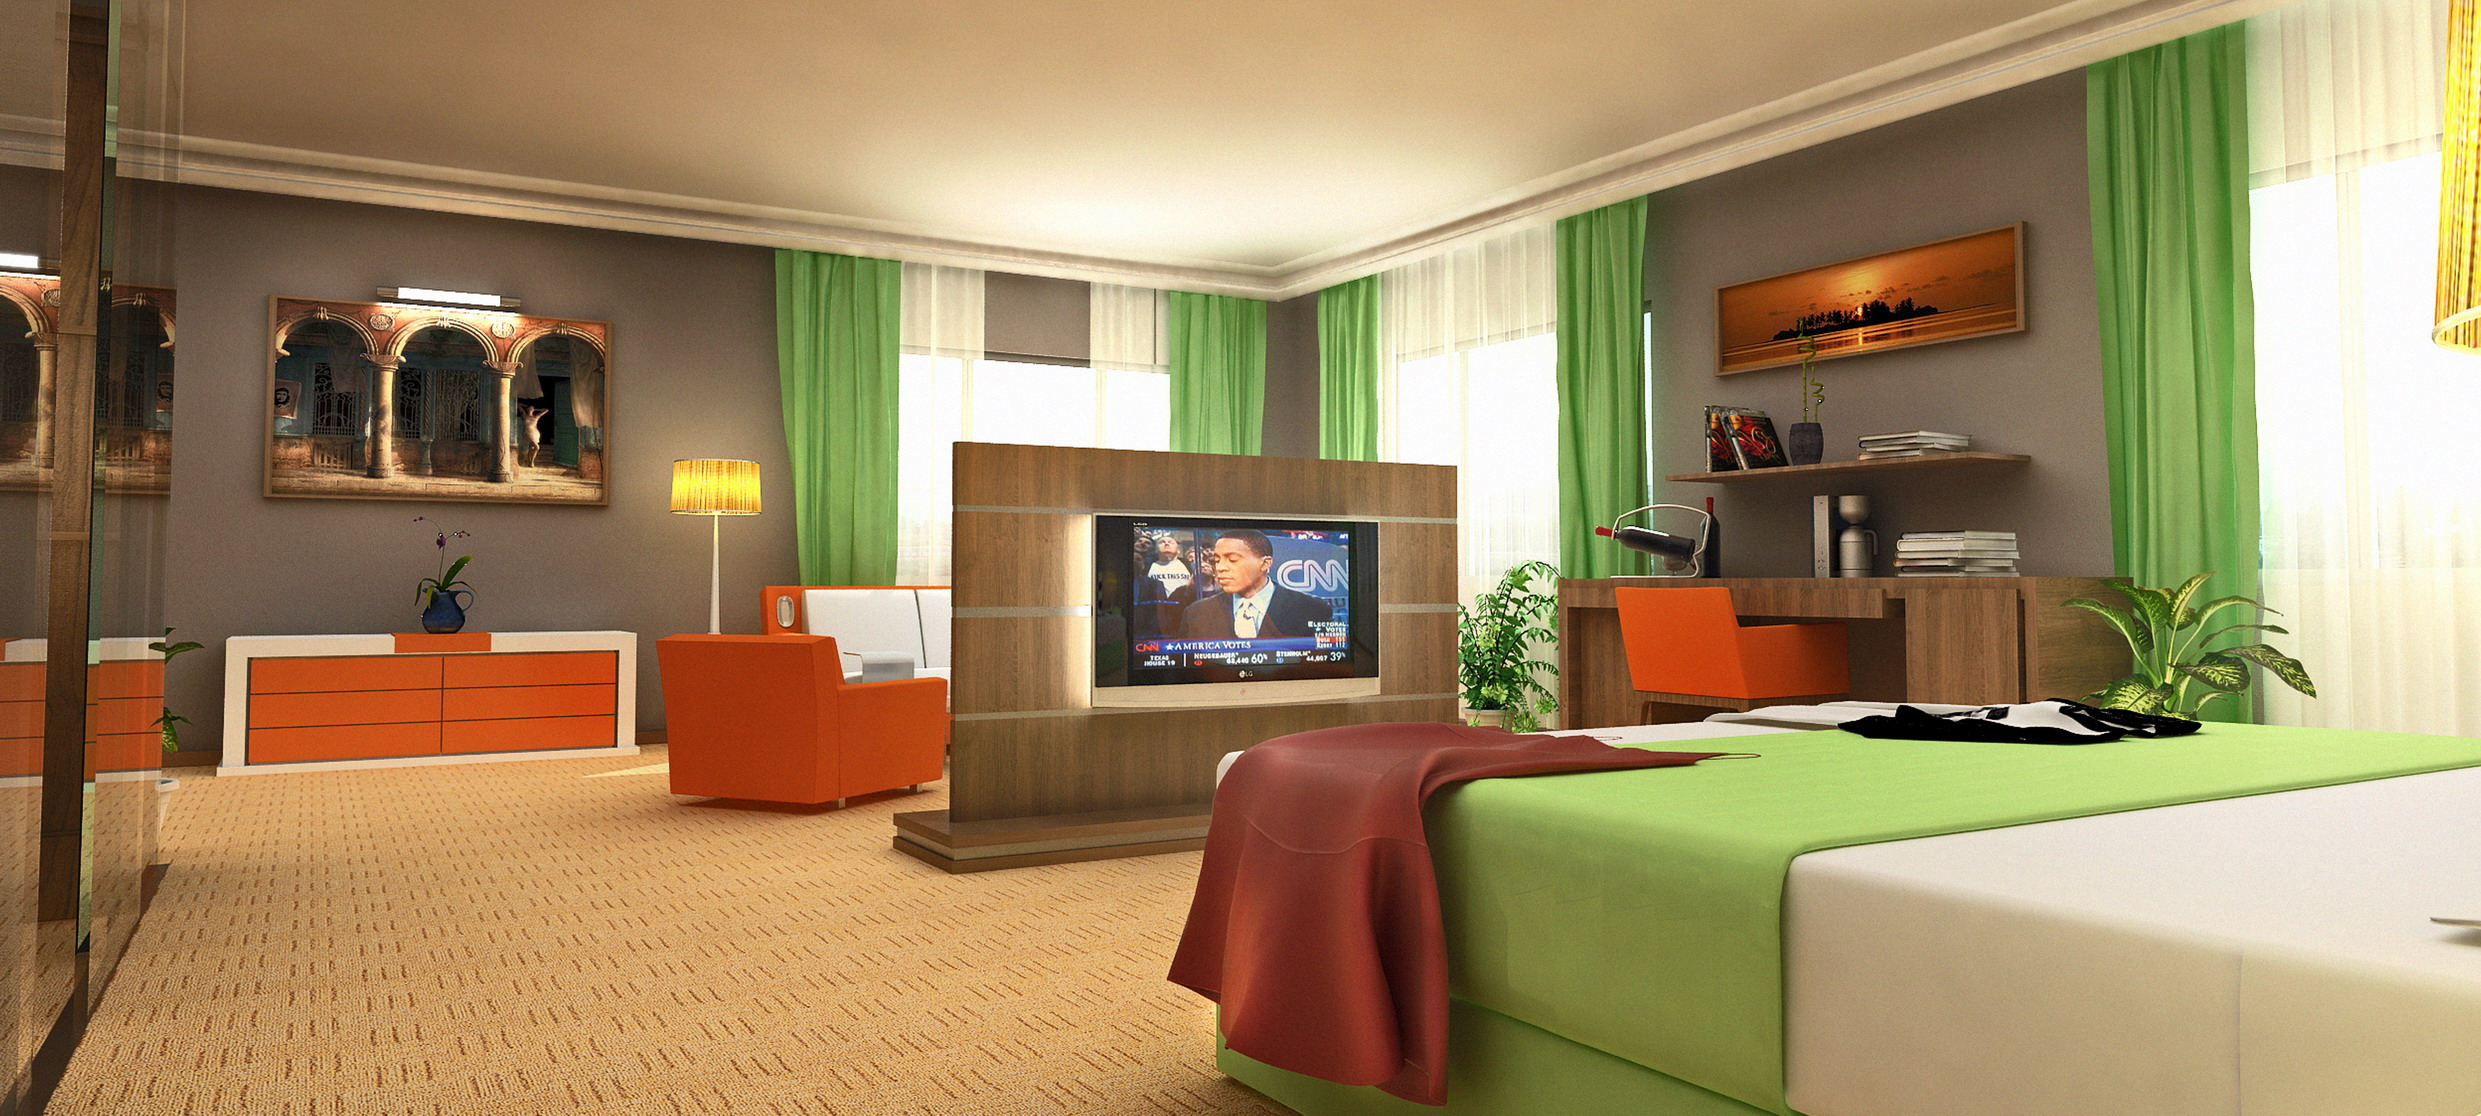 3D hotel room rendering bed side